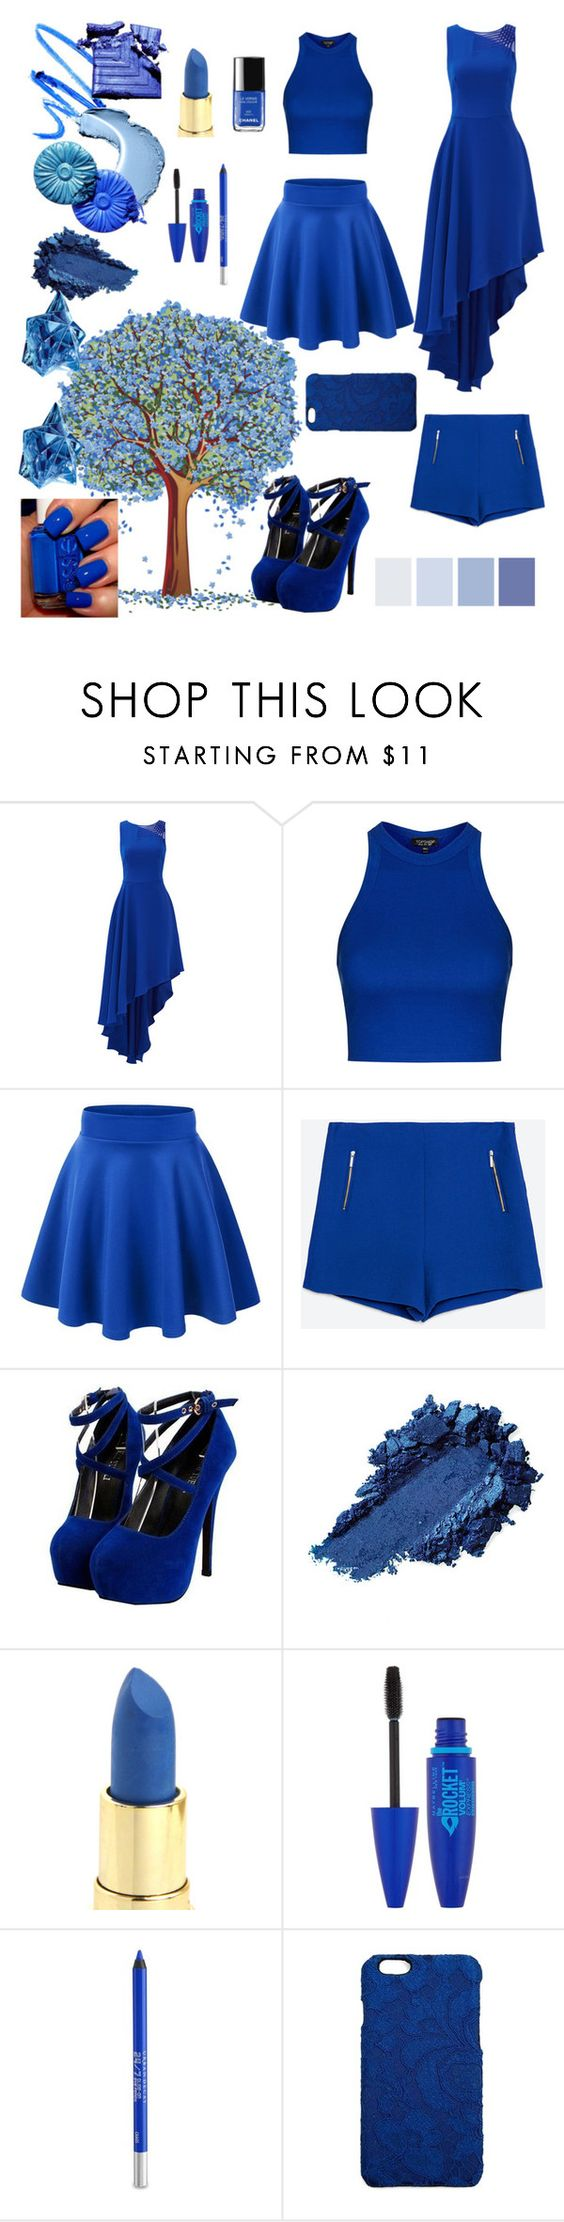 """""""Untitled #8"""" by catarina-costa-iii ❤ liked on Polyvore featuring Halston Heritage, Topshop, Zara, Maybelline, Urban Decay, Dolce&Gabbana and Thierry Mugler"""